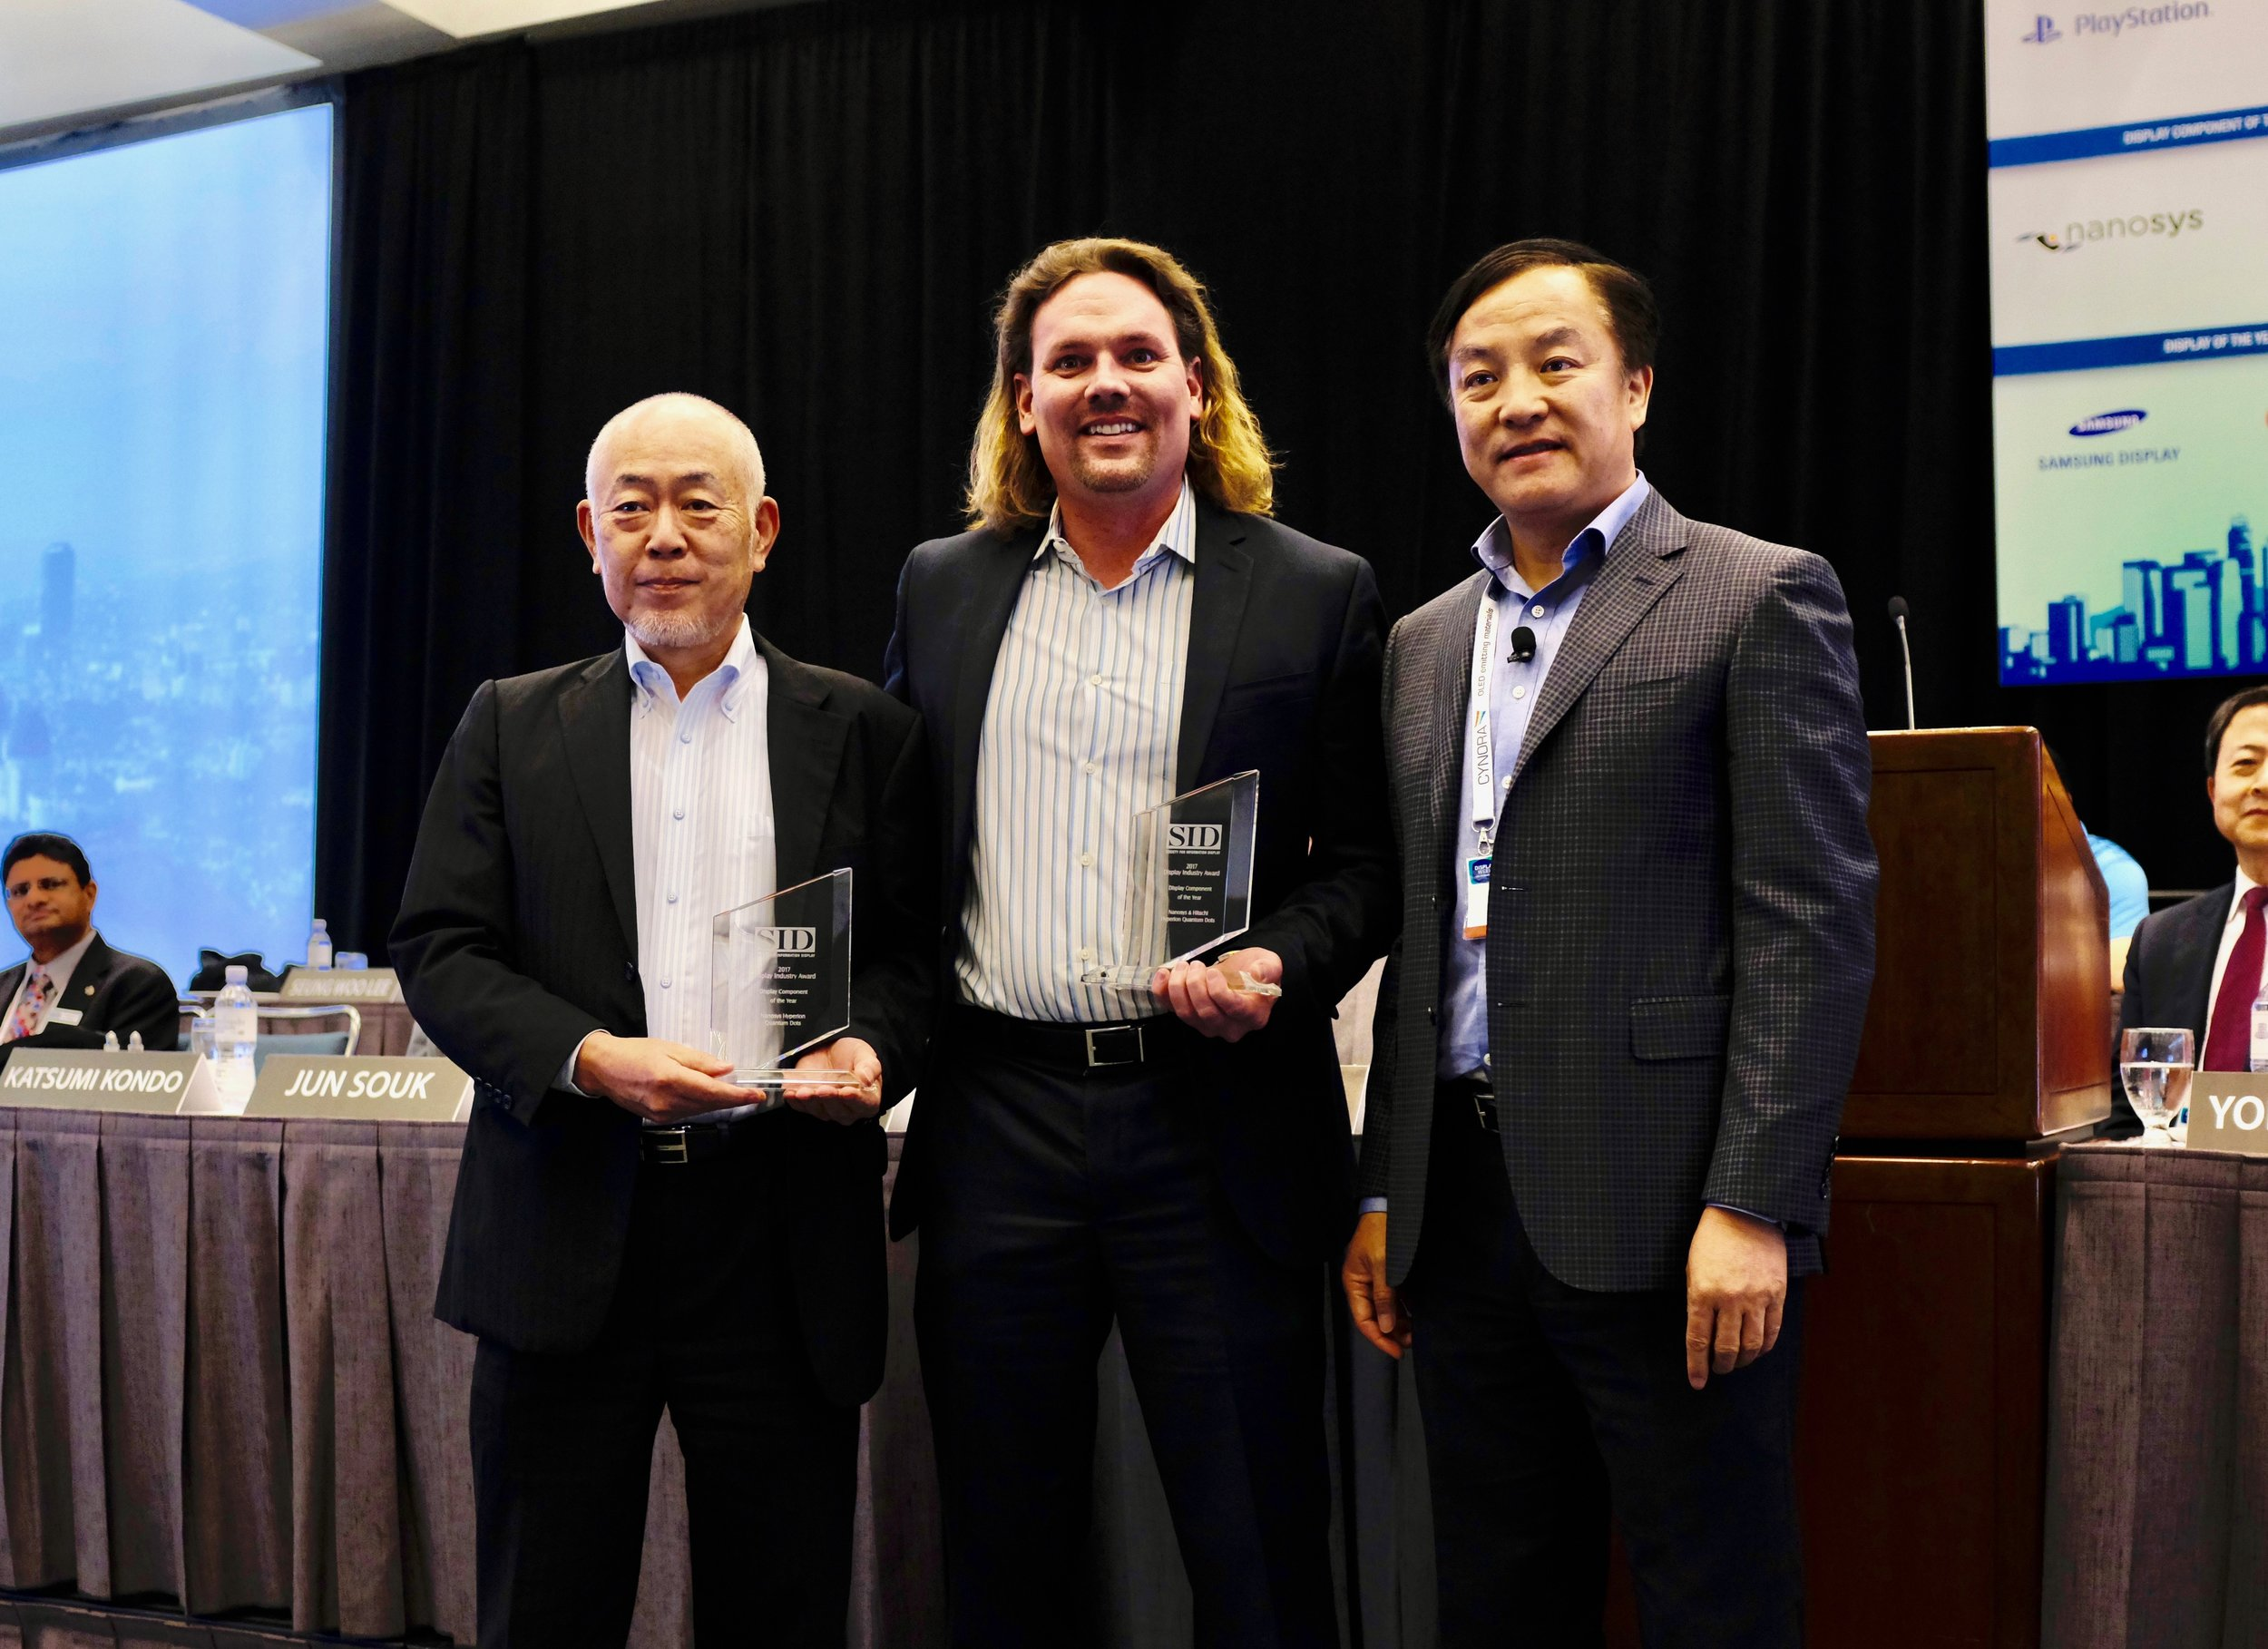 SID Awards Chair and Apple Vice President of Display Engineering, Wei Chen,presents the SID Component of the Year Award to Nanosys and Hitachi Chemicals.